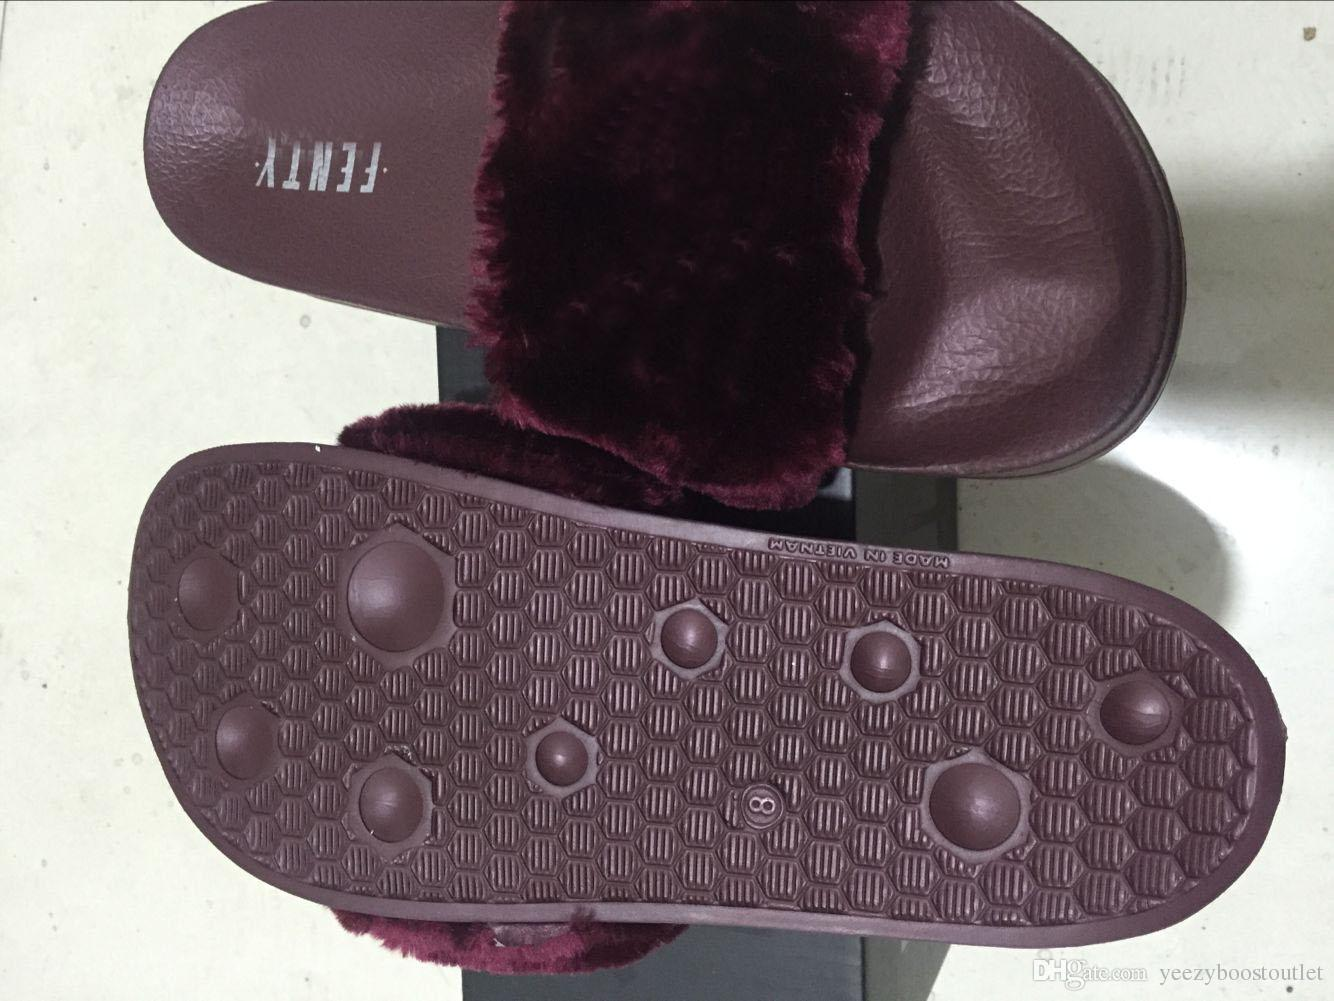 Rihanna Faux Fur Slide Indoor Slippers Ladies Fashion Sandal Women Slippers  Black Pink Burgundy Red Grey Sandals With Shoes Box Dustbag Designer Shoes  Brown ... b0a5551ed